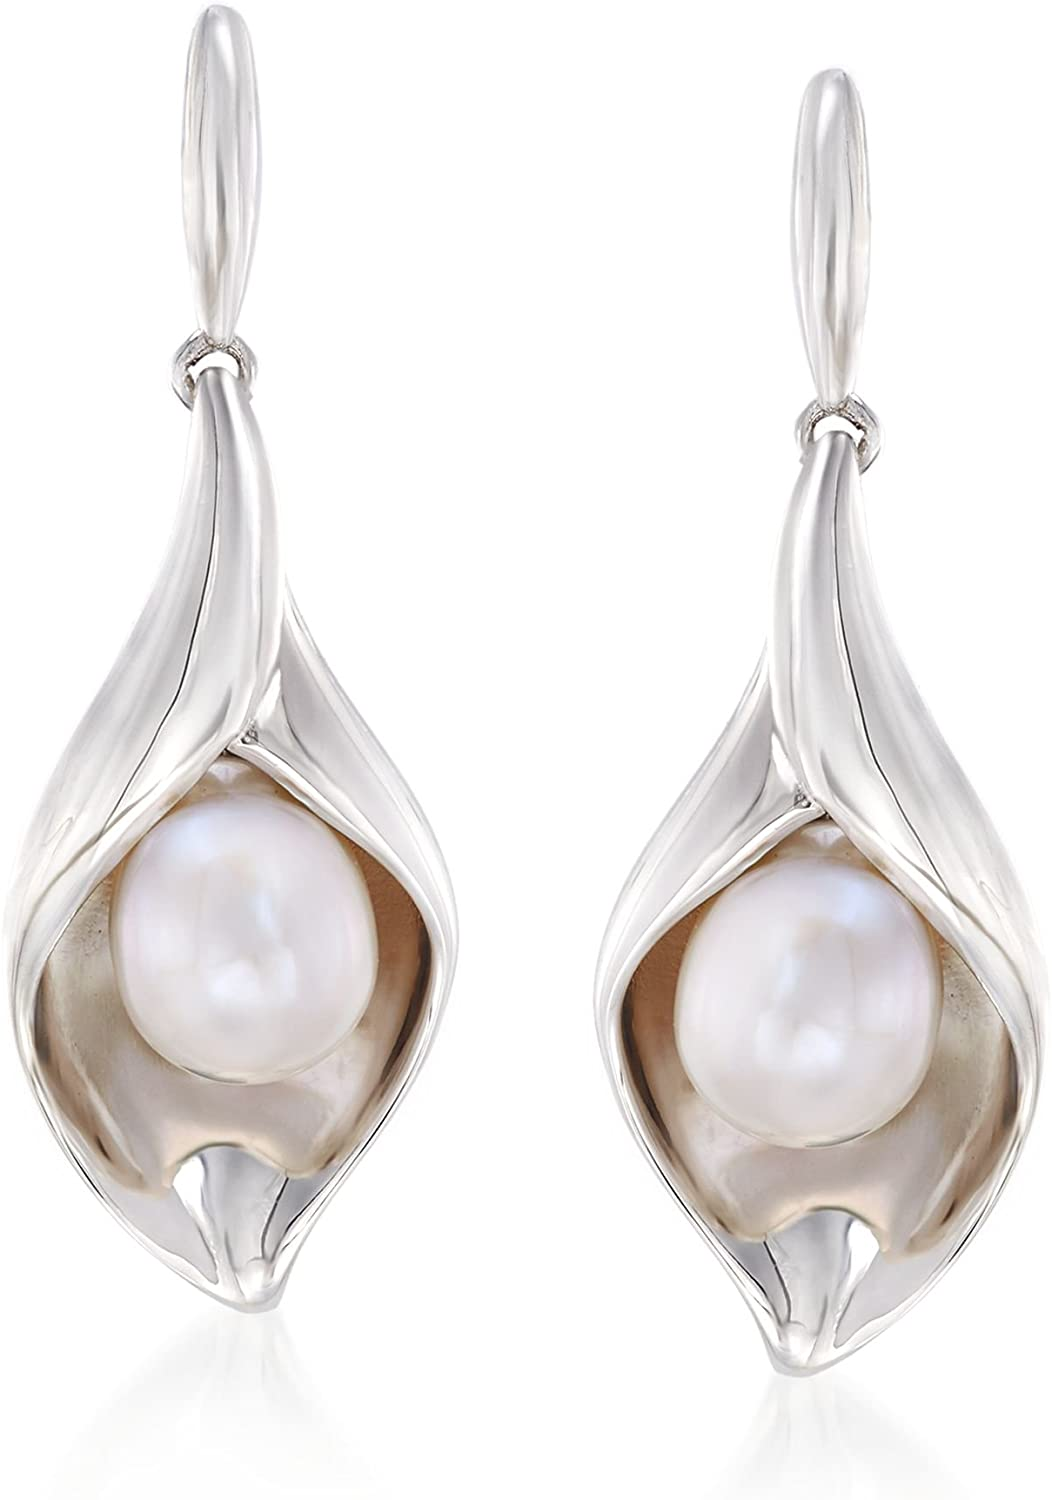 Ross-Simons 6.5-7mm Cultured Pearl Nature-Inspired Drop Earrings in Sterling Silver